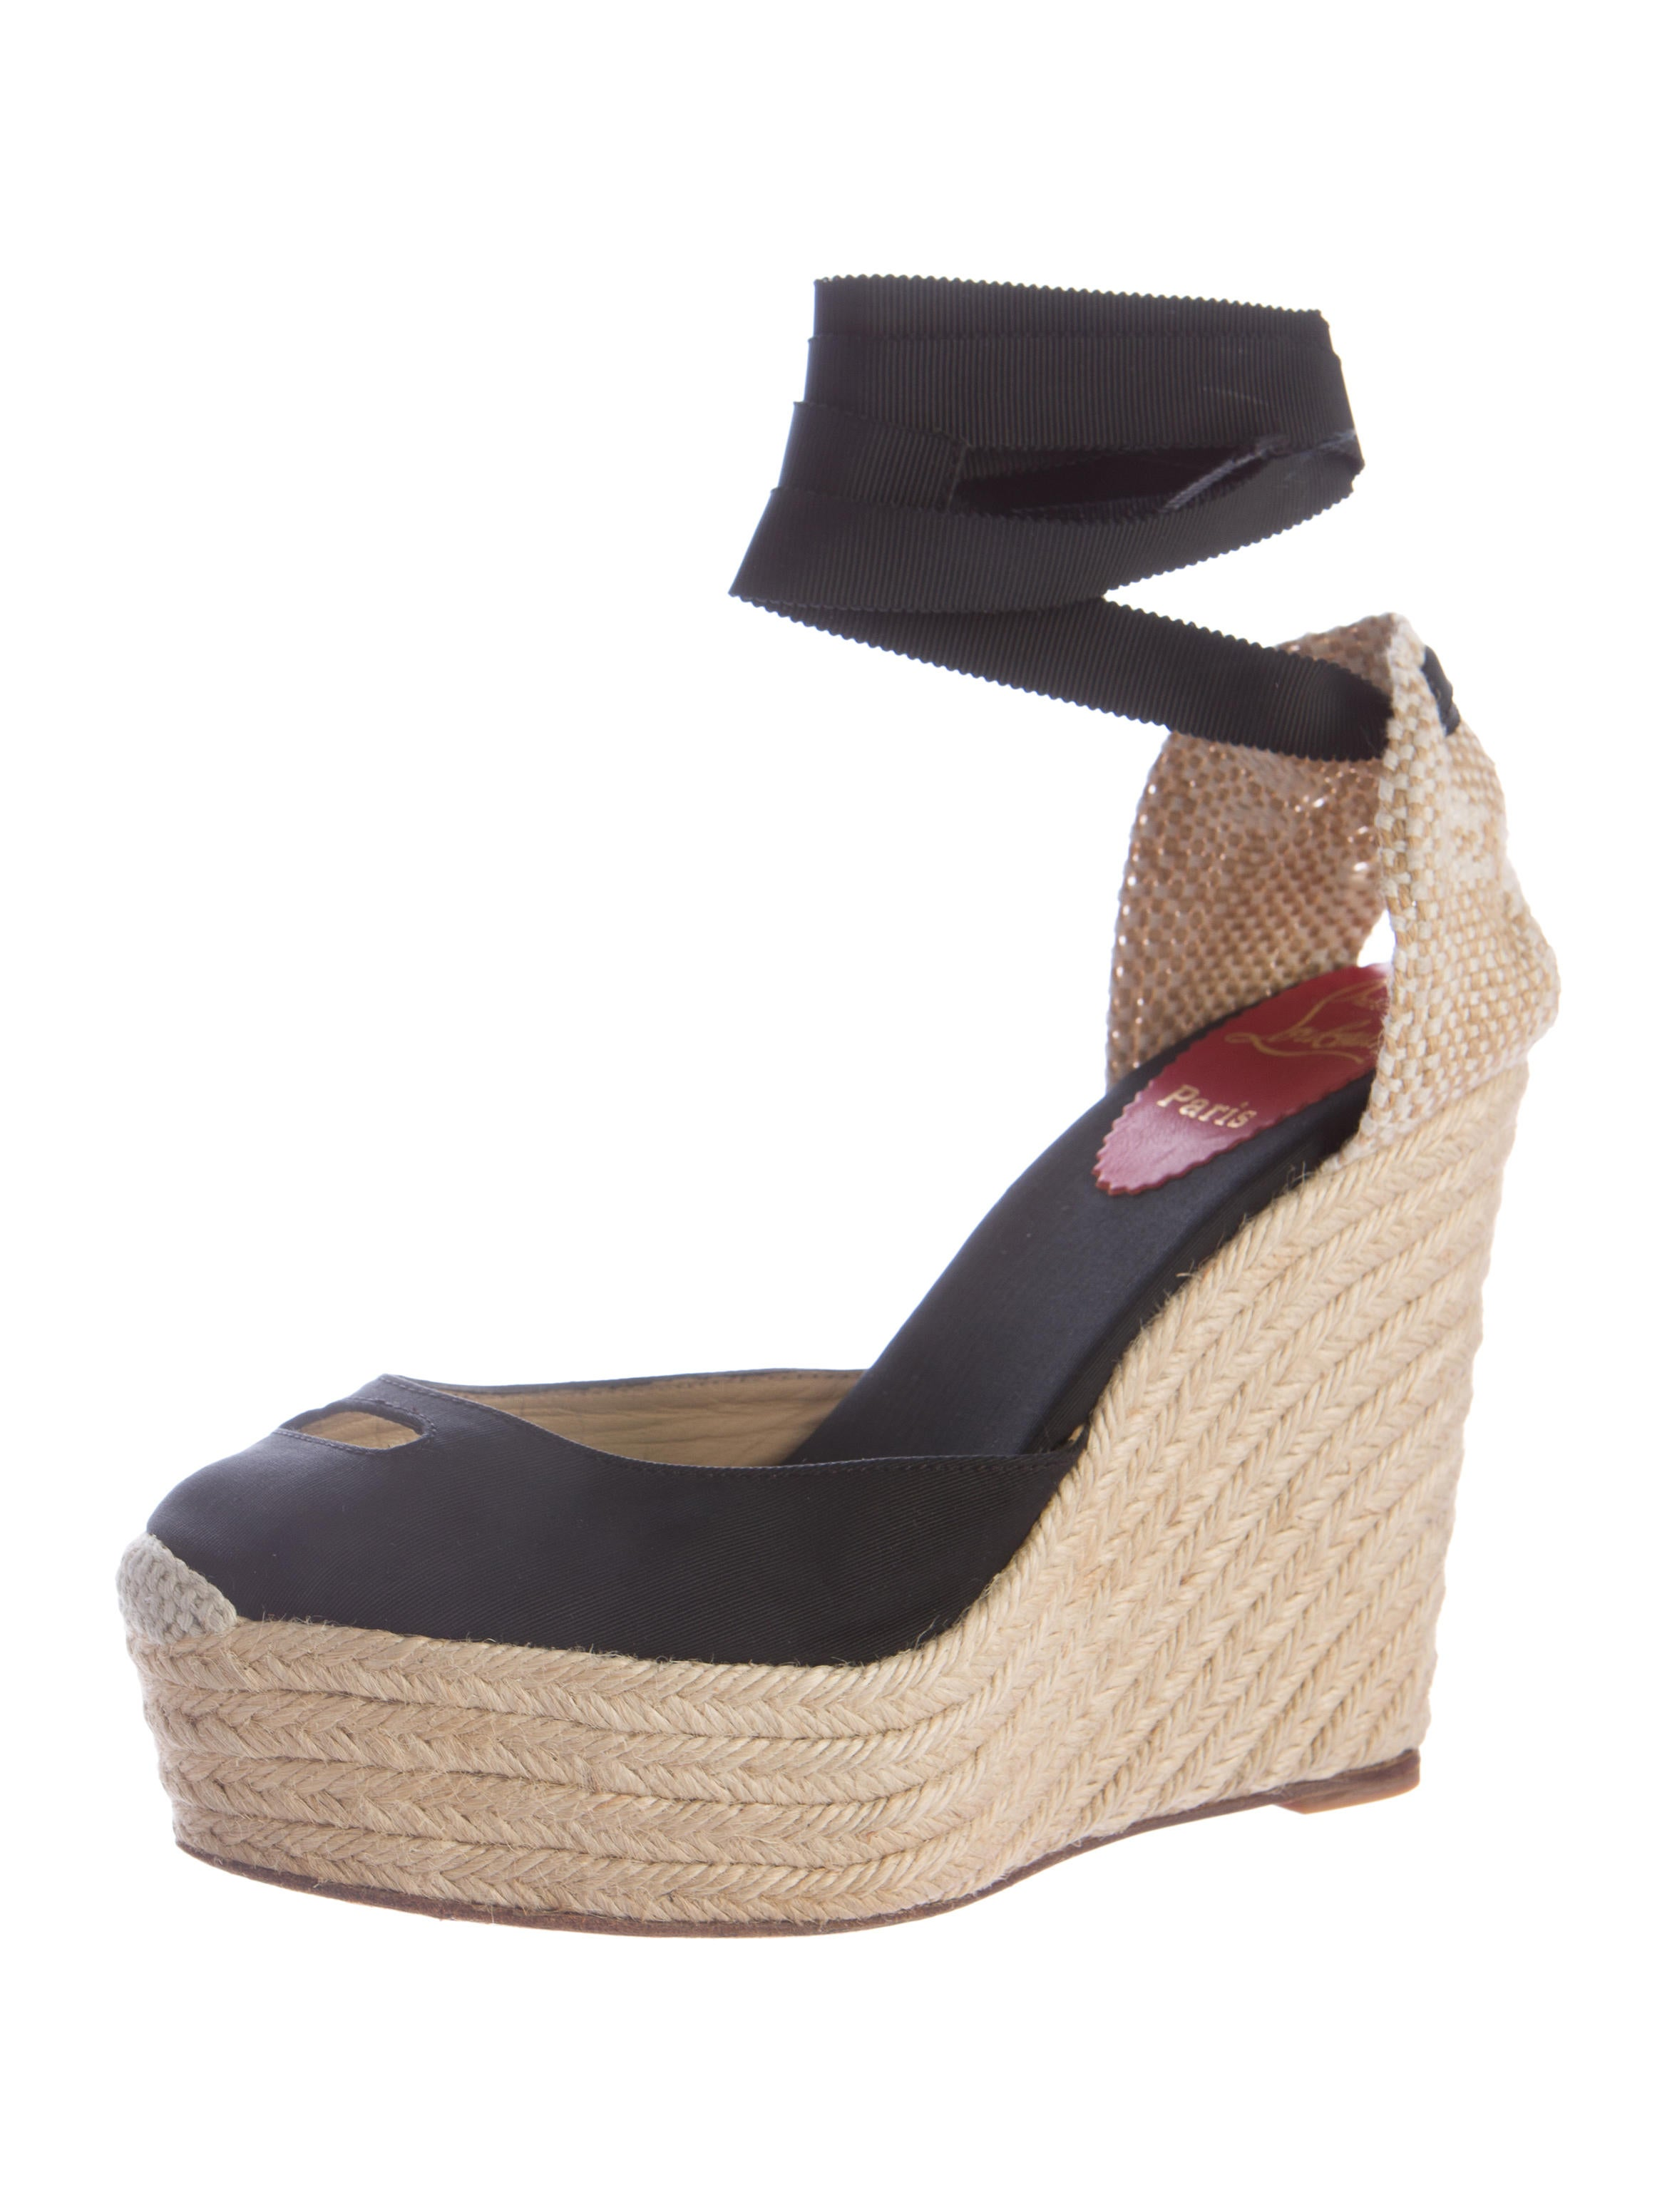 christian louboutin tie up platform wedges shoes